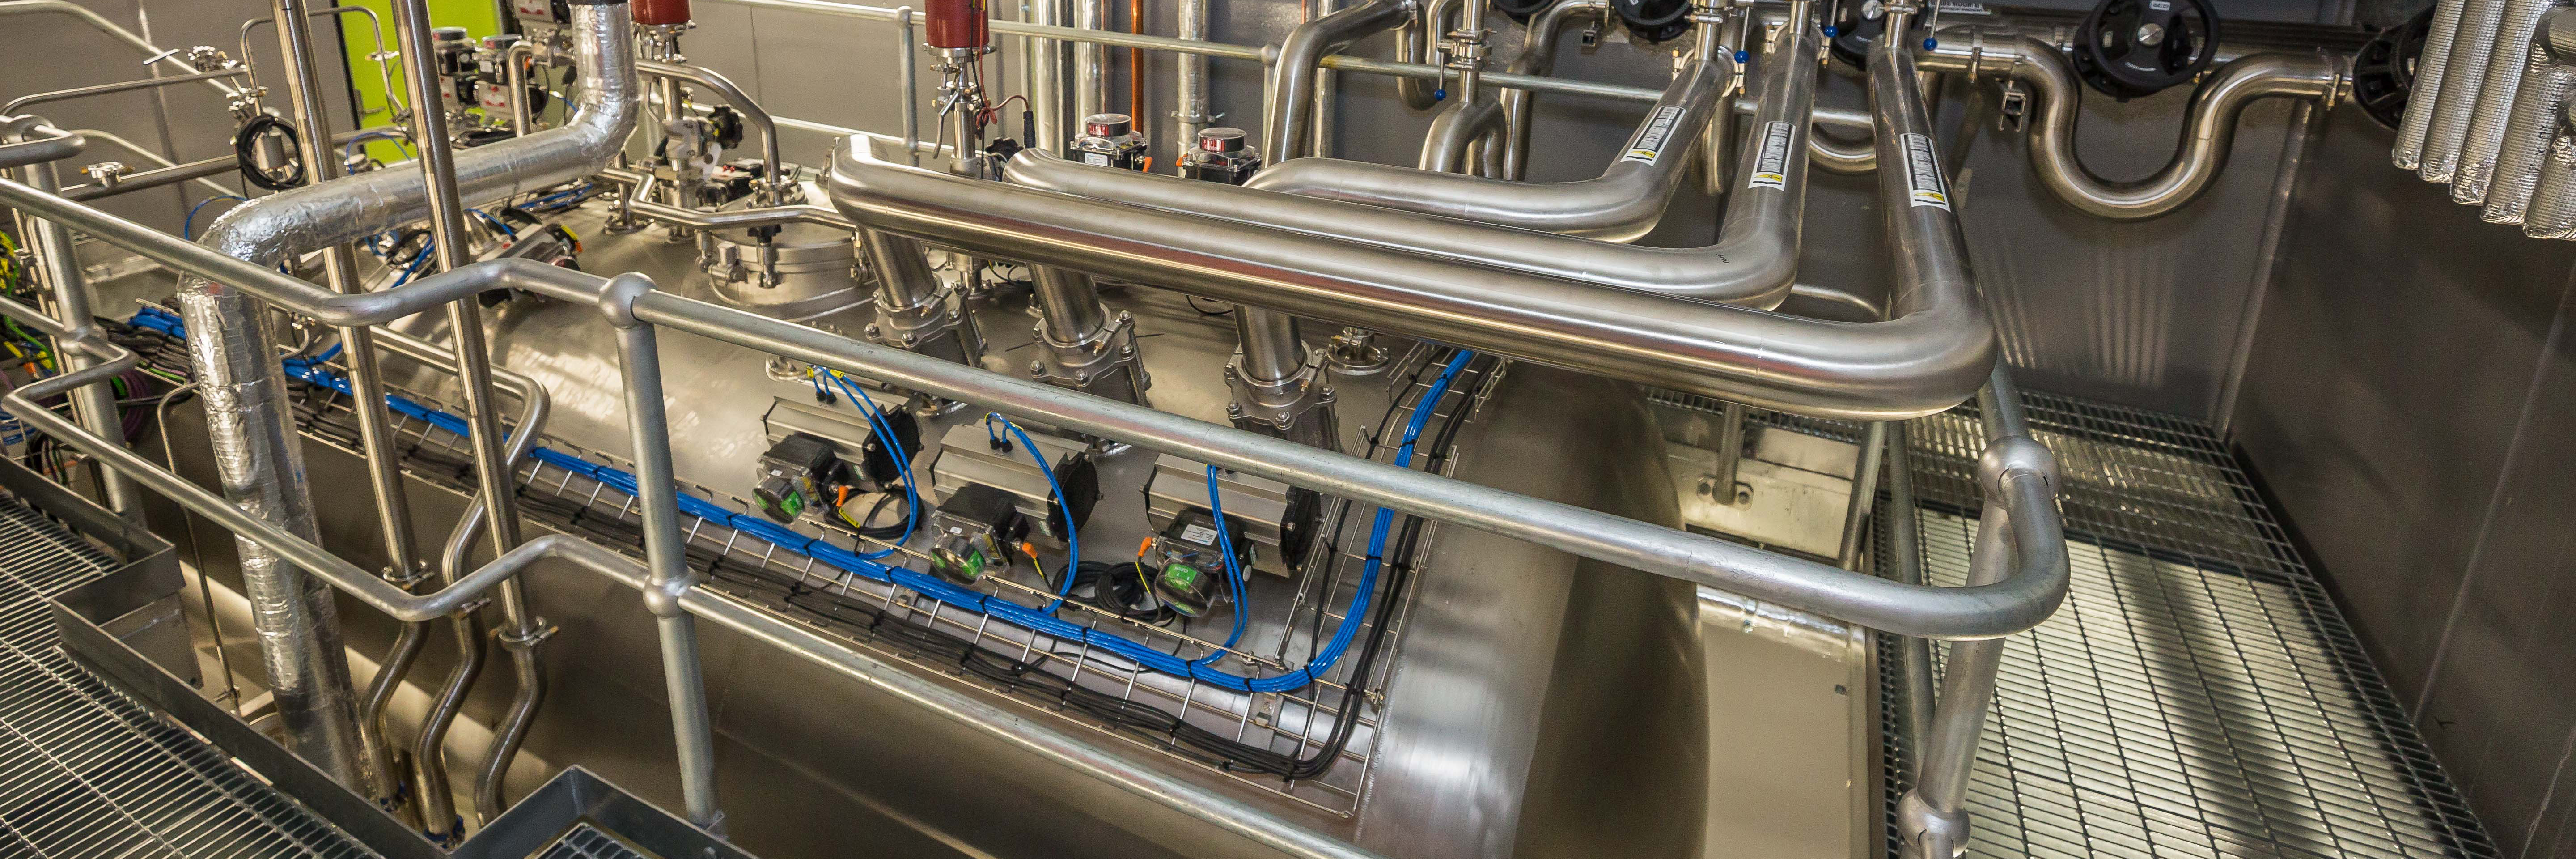 A stainless approach to protecting the environment